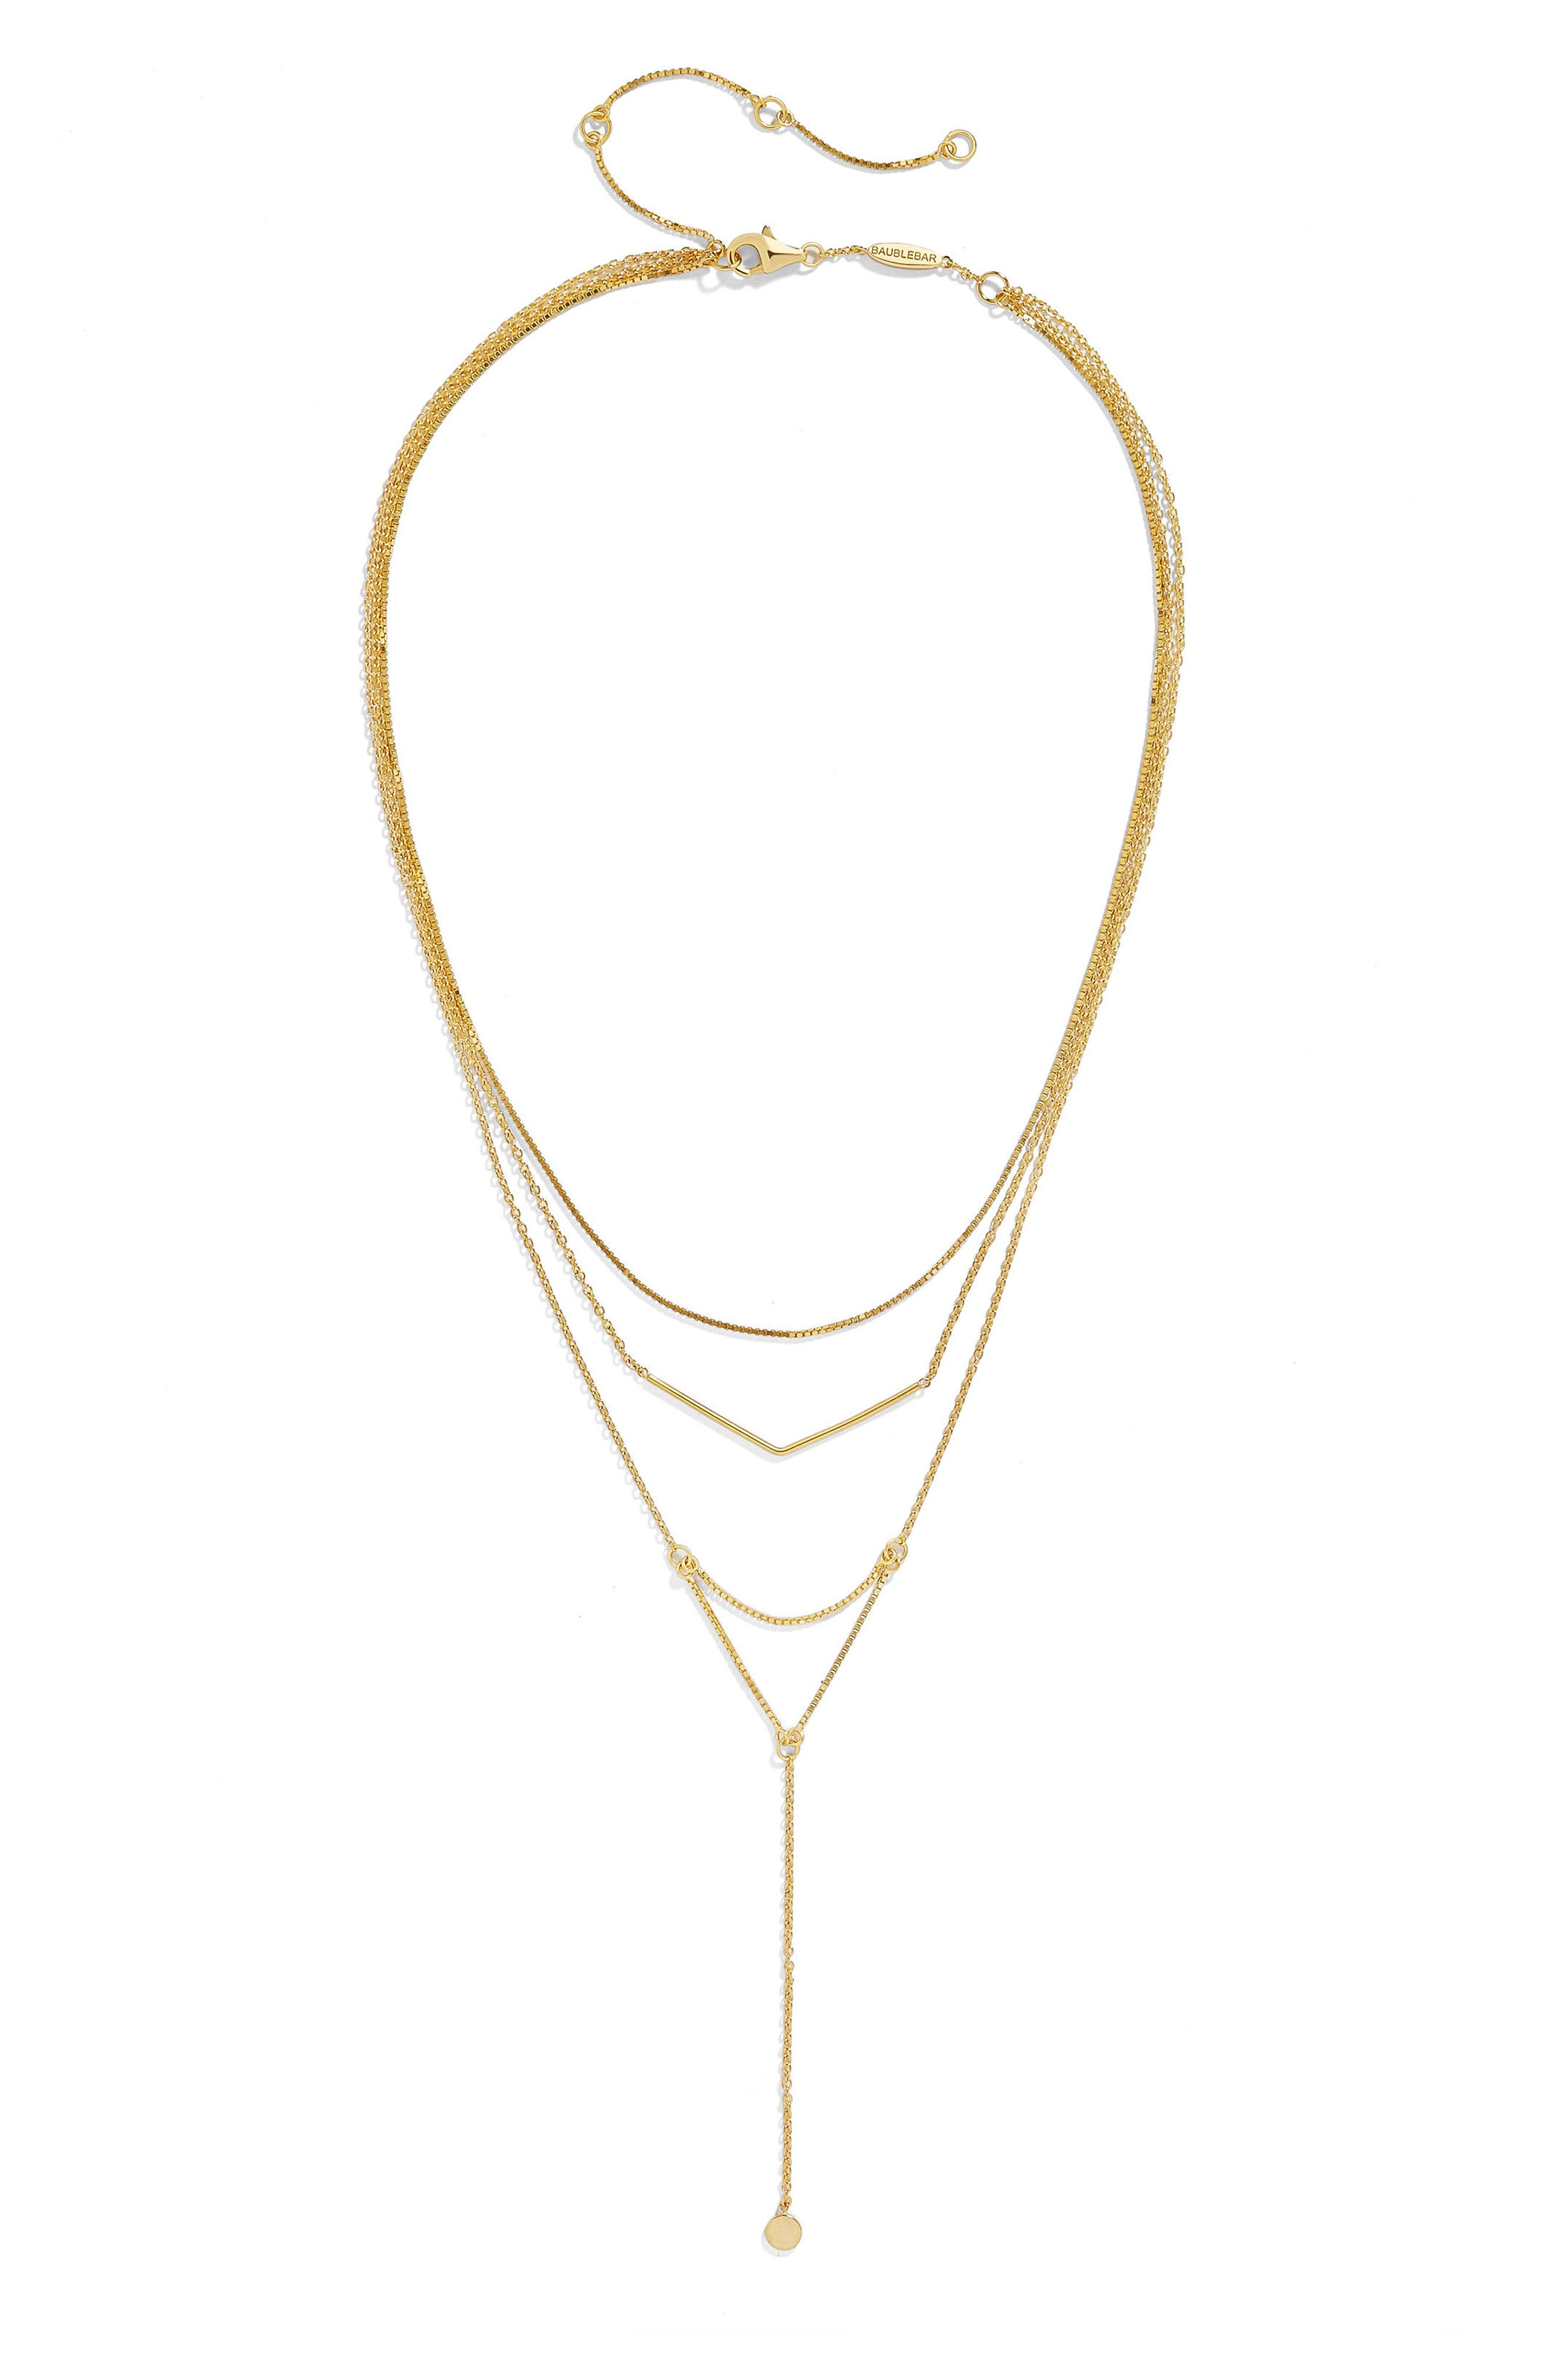 Tris Everyday Connected Y 18-Karat Gold Plate Necklace,                         Main,                         color, Gold